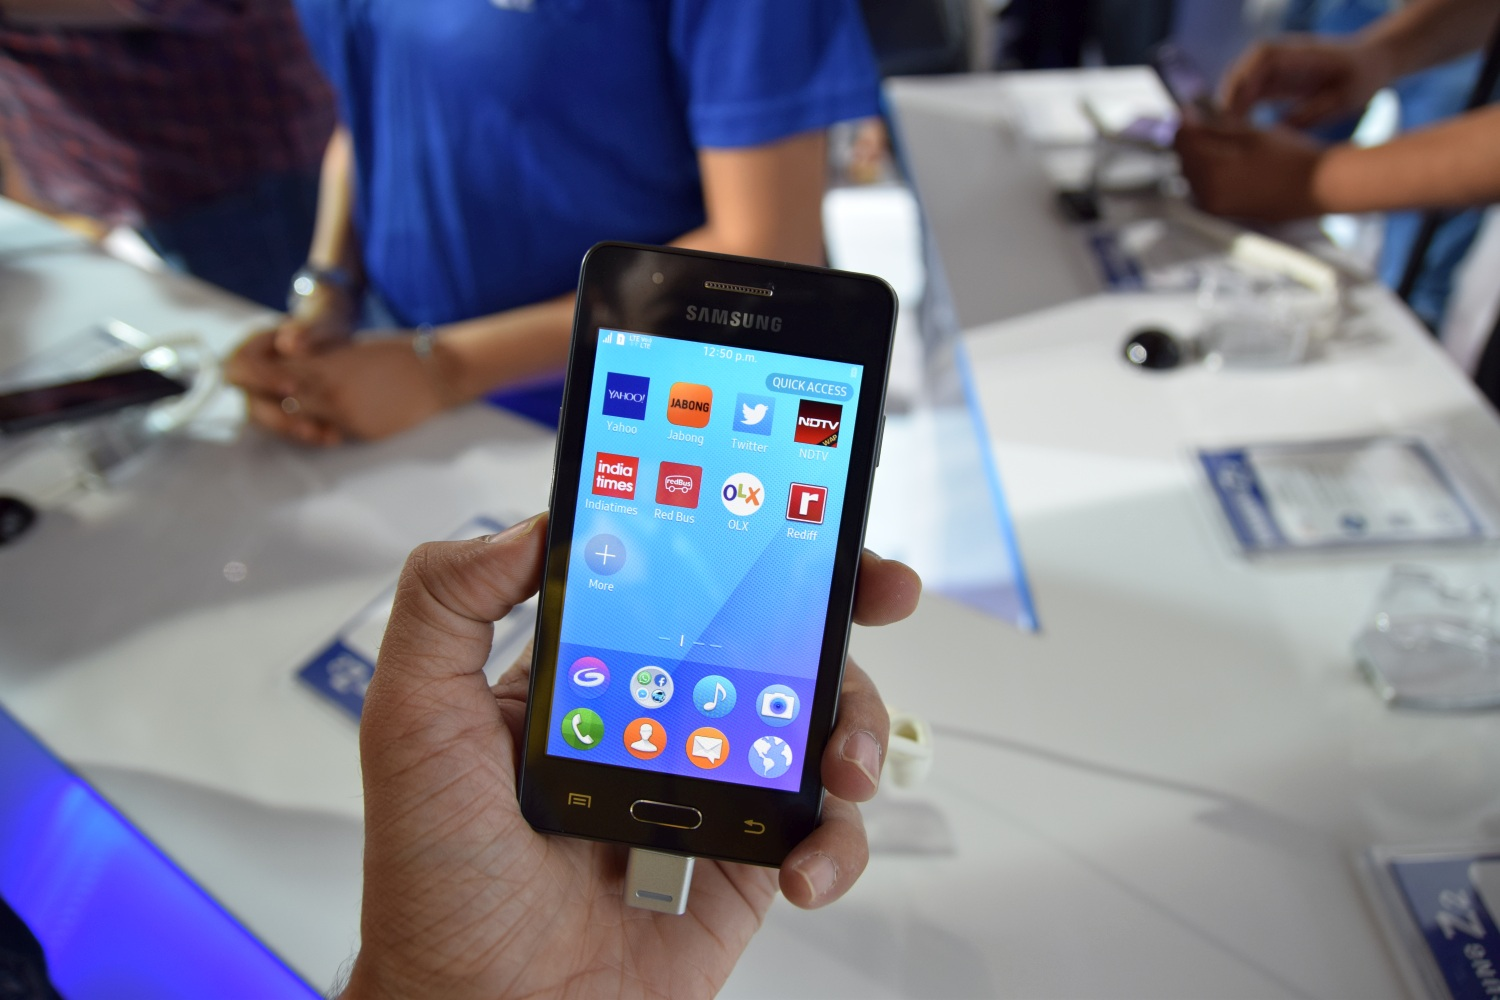 Samsung Z2 is now available in India through PayTM - SamMobile